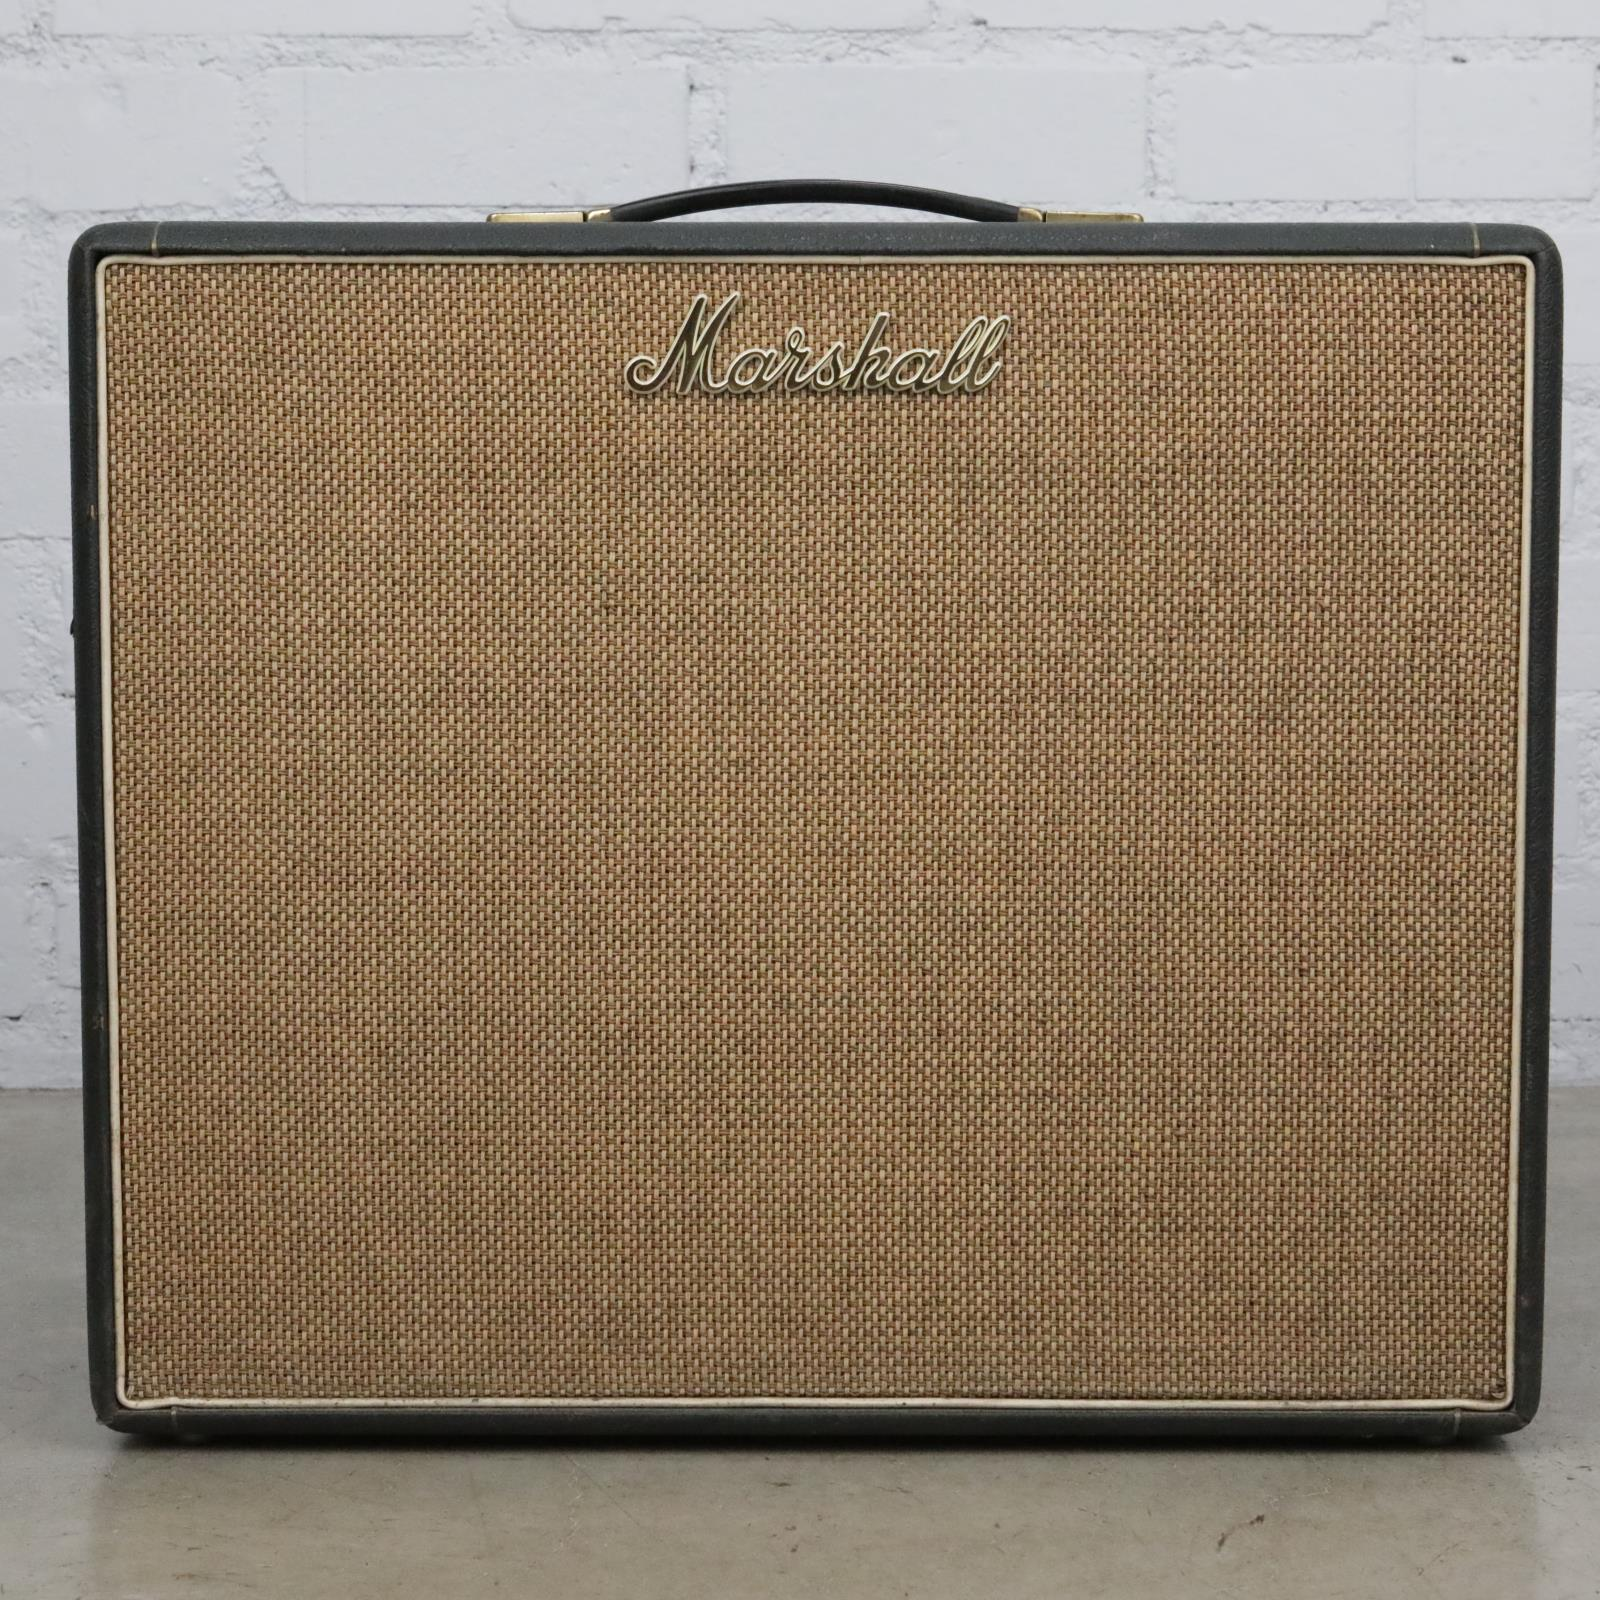 "1969 Marshall 1930 ""Popular"" Tube Combo Guitar Amplifier #41572"